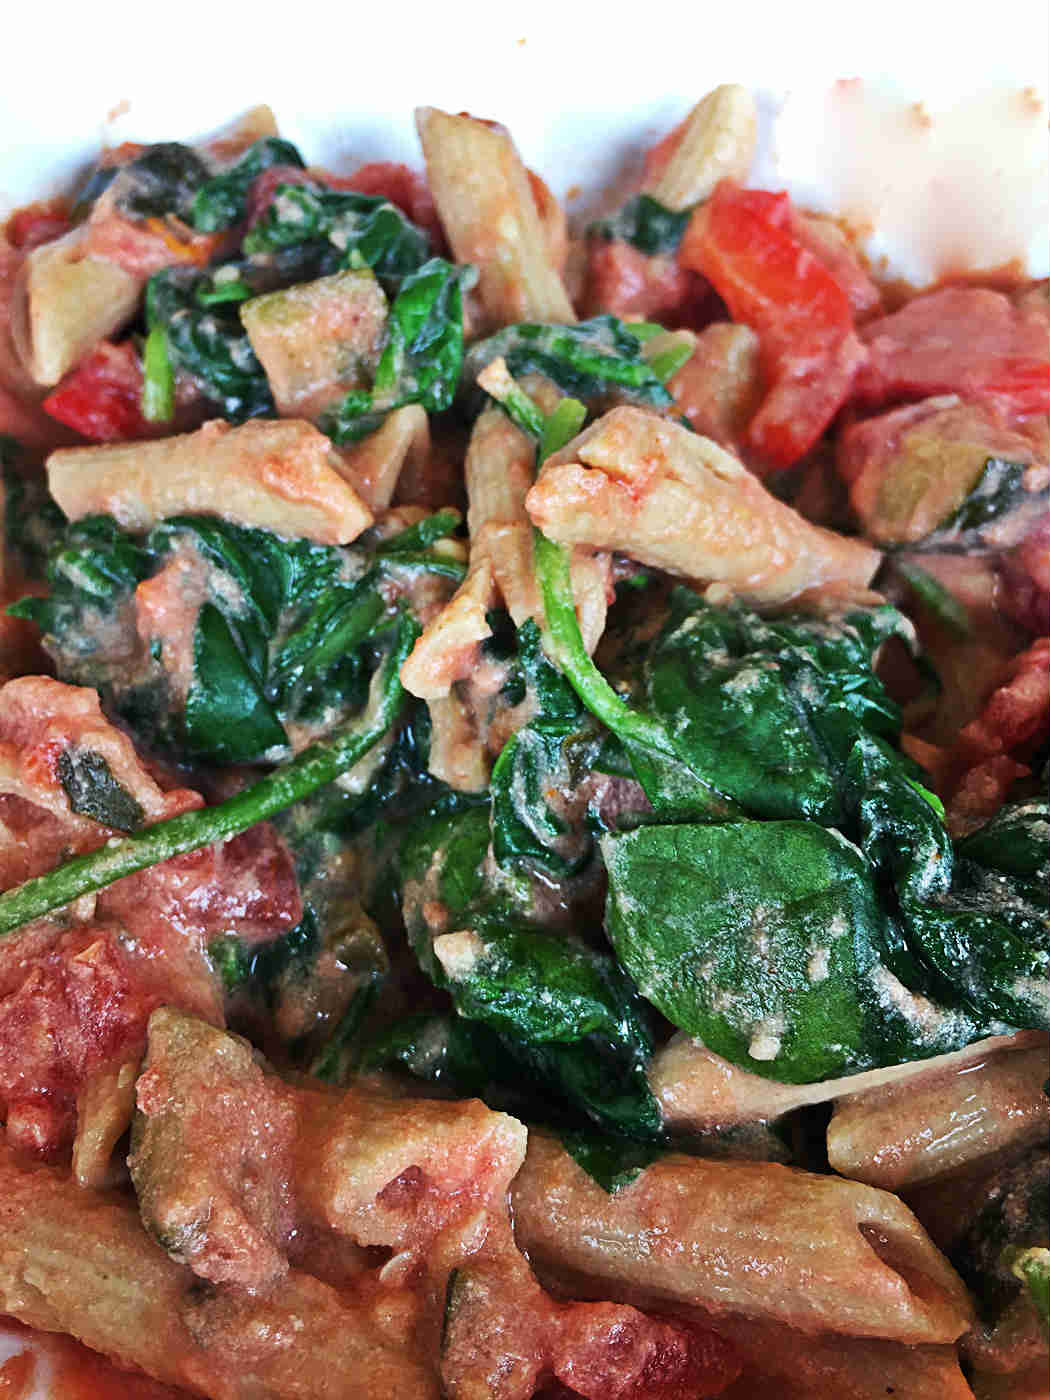 Image of spinach melted in with the creamy tofu pasta sauce and whole grain penne.